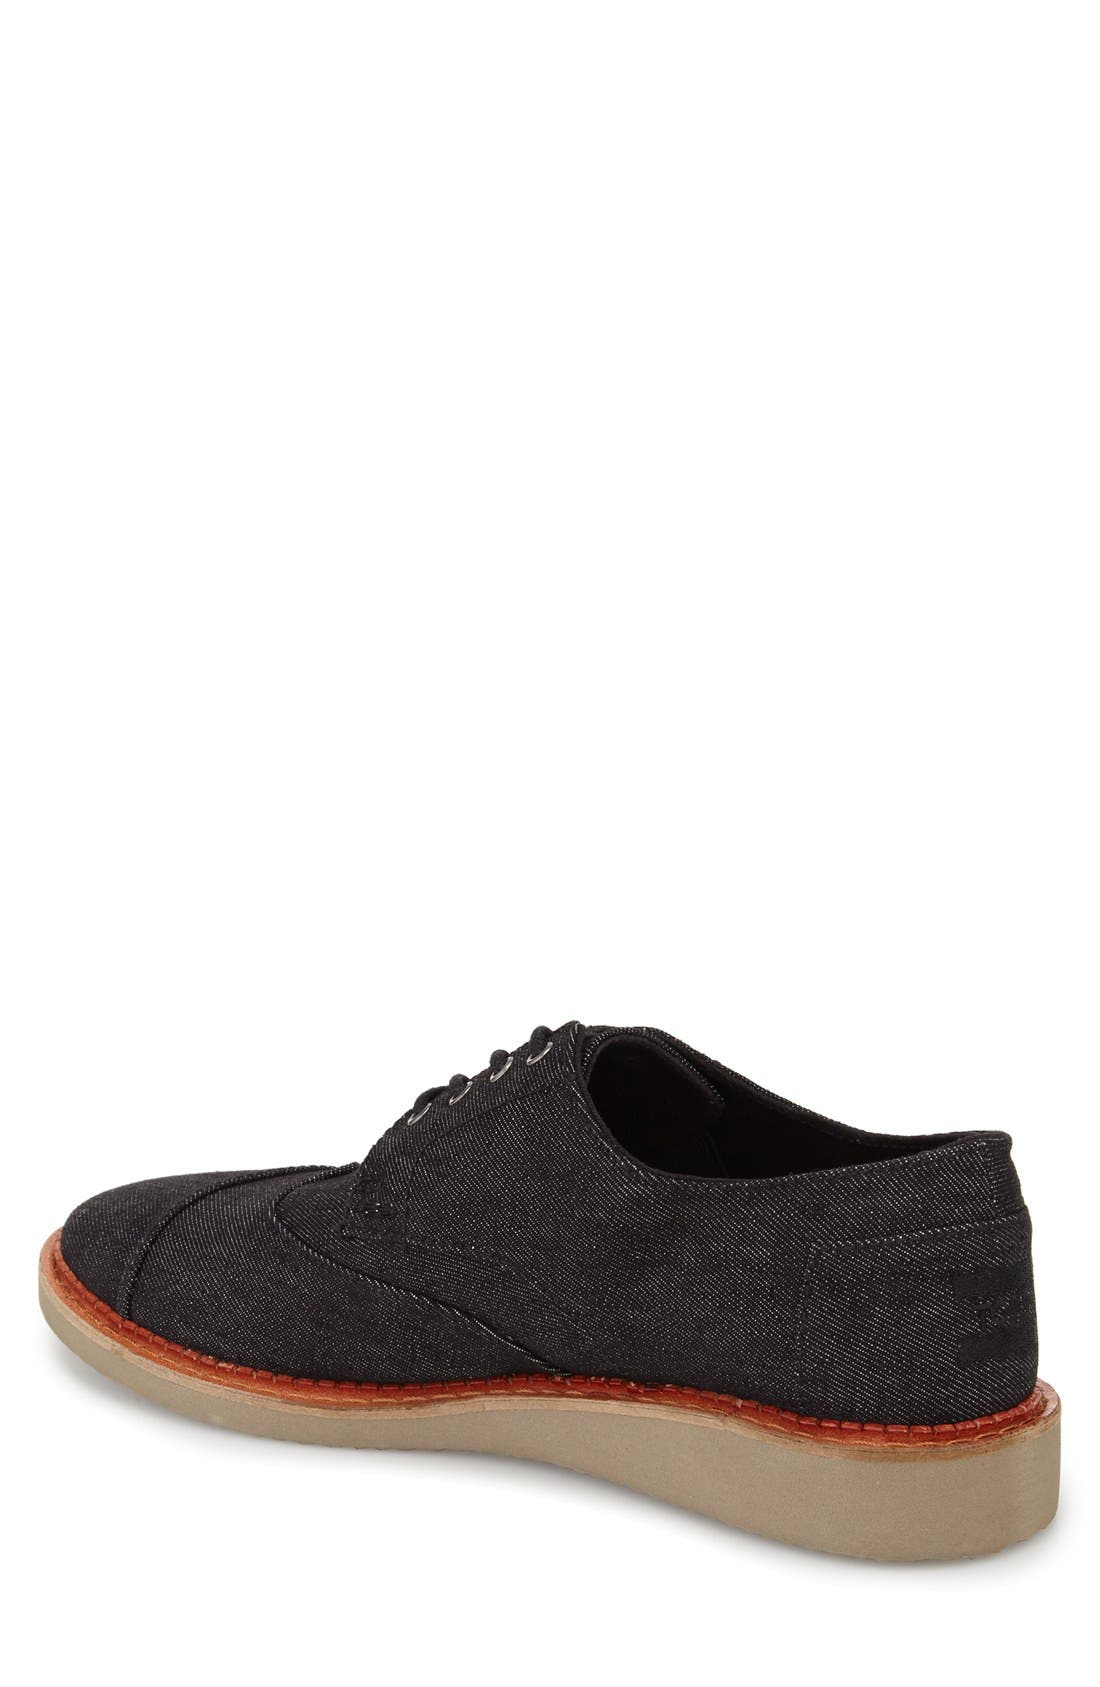 'Classic Brogue' Cotton Twill Derby,                             Alternate thumbnail 33, color,